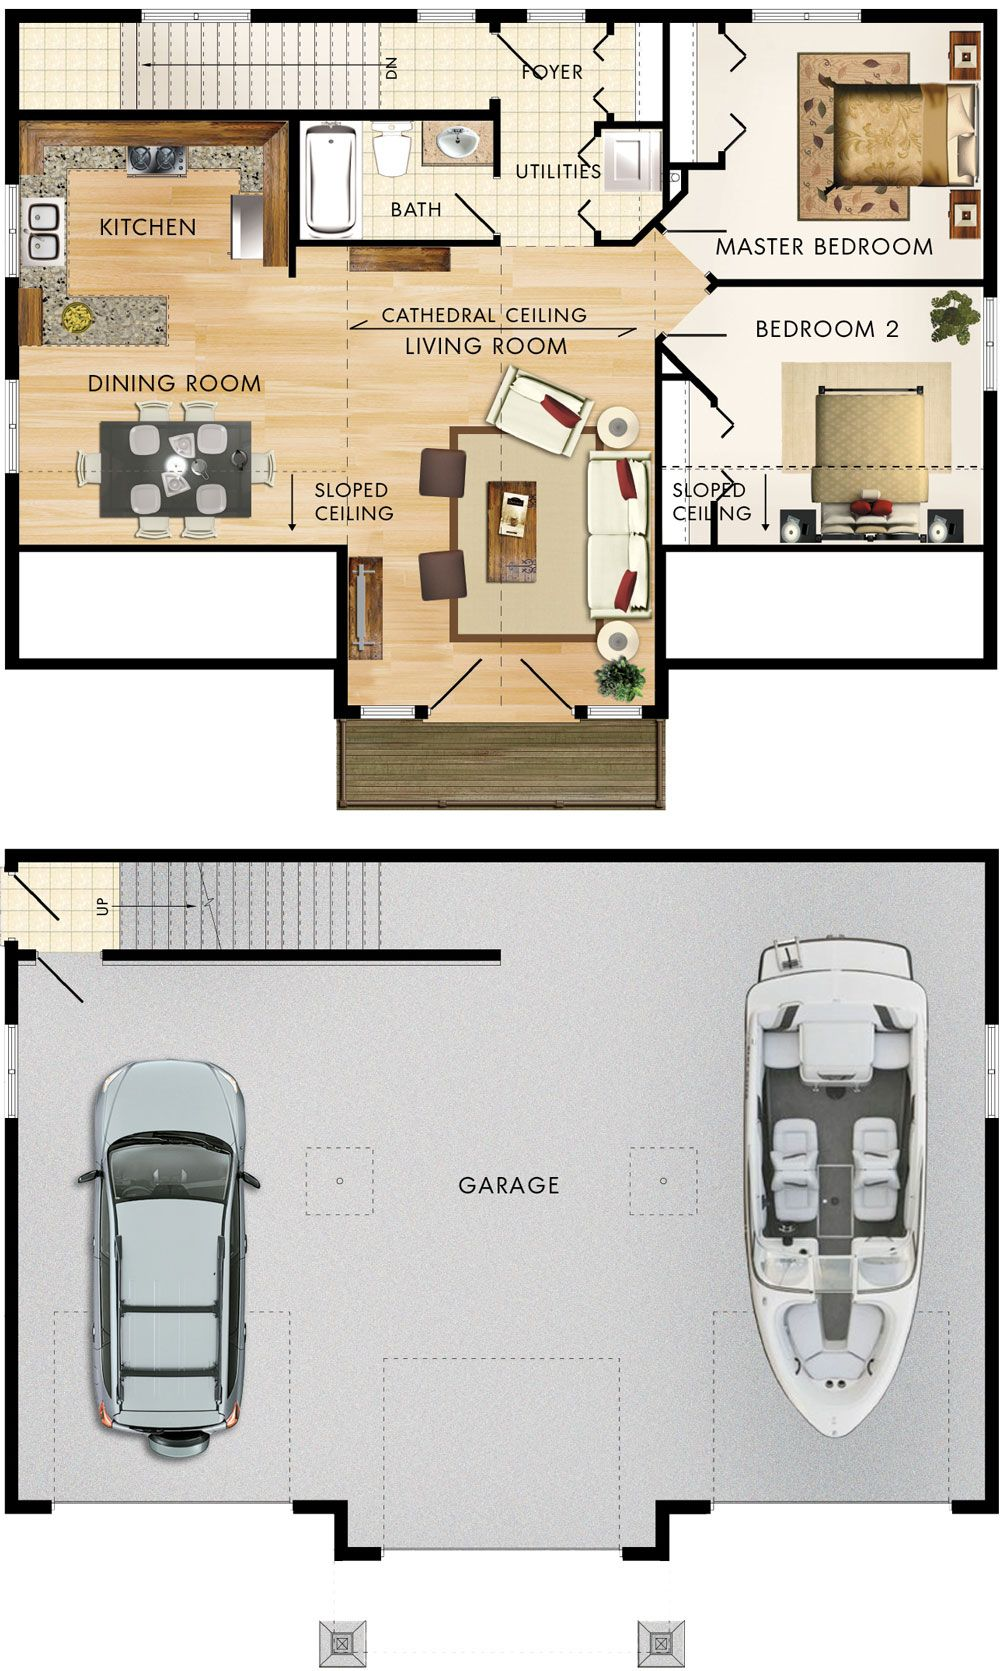 Whistler ii floor plan cornerstone pinterest whistler garage apartments and house - Garage apartment floor plans ...